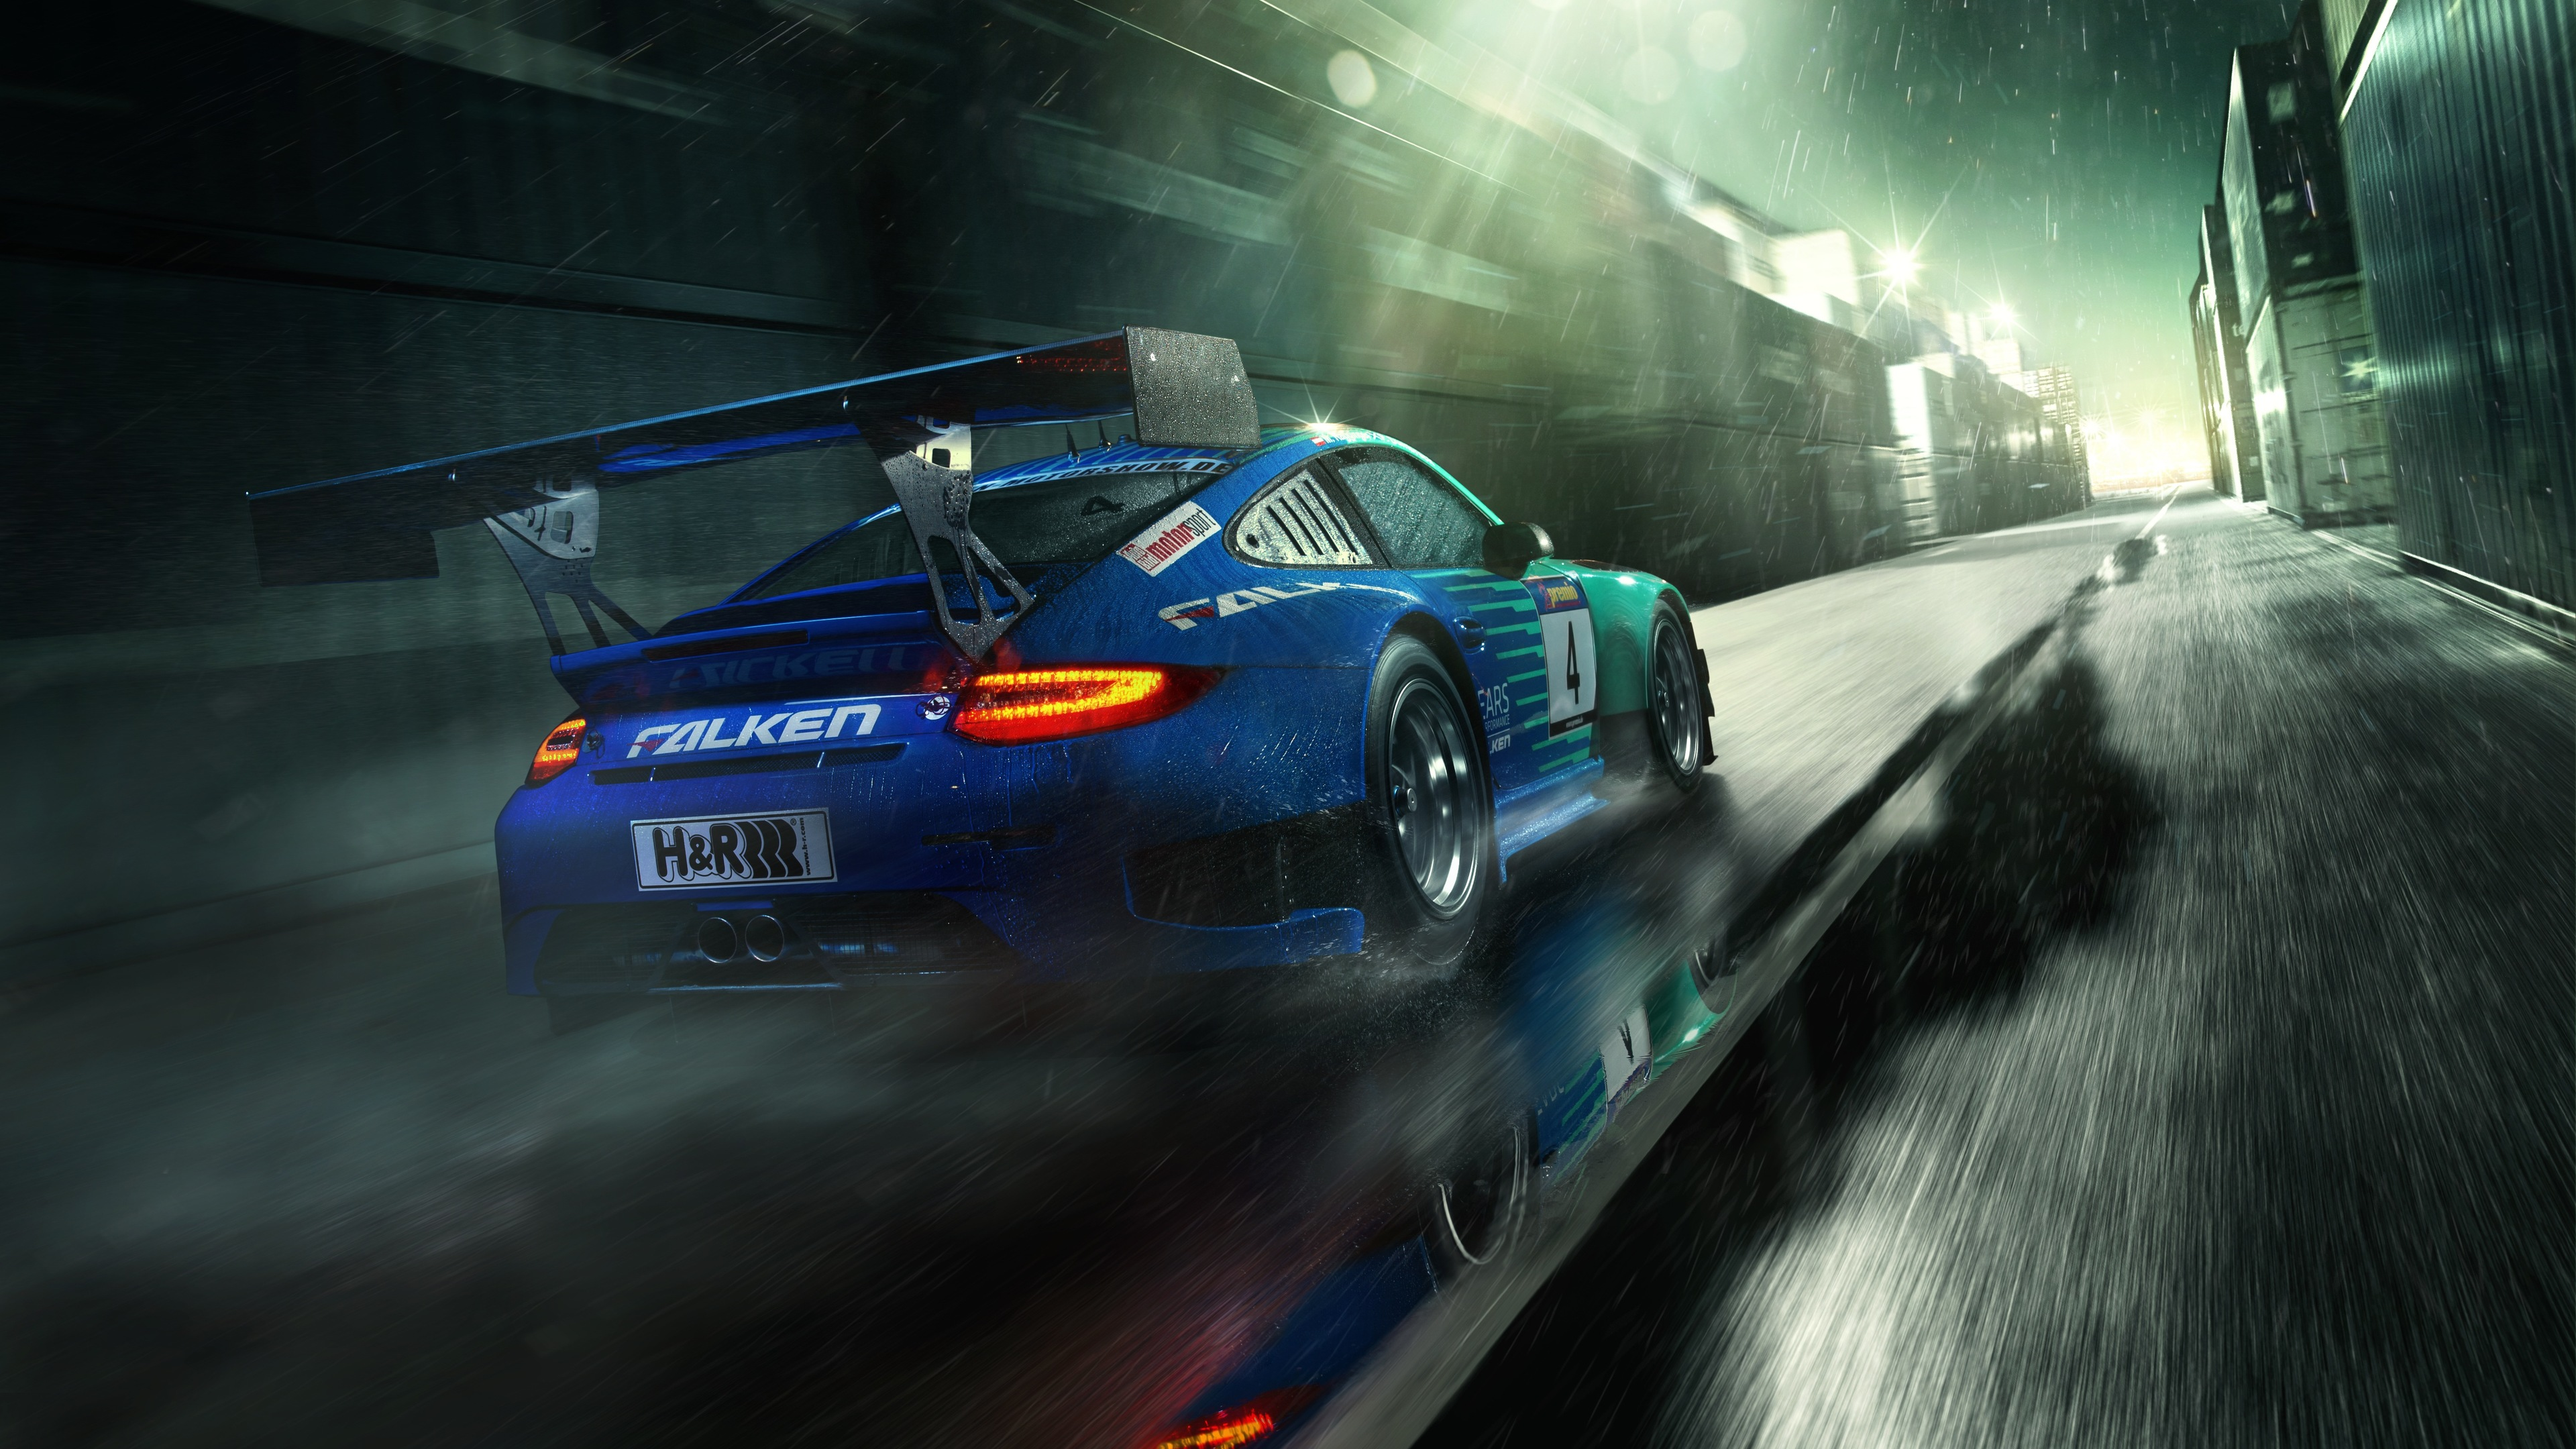 falken porsche 4k 1546361653 - FALKEN Porsche 4k - porsche wallpapers, hd-wallpapers, cars wallpapers, 5k wallpapers, 4k-wallpapers